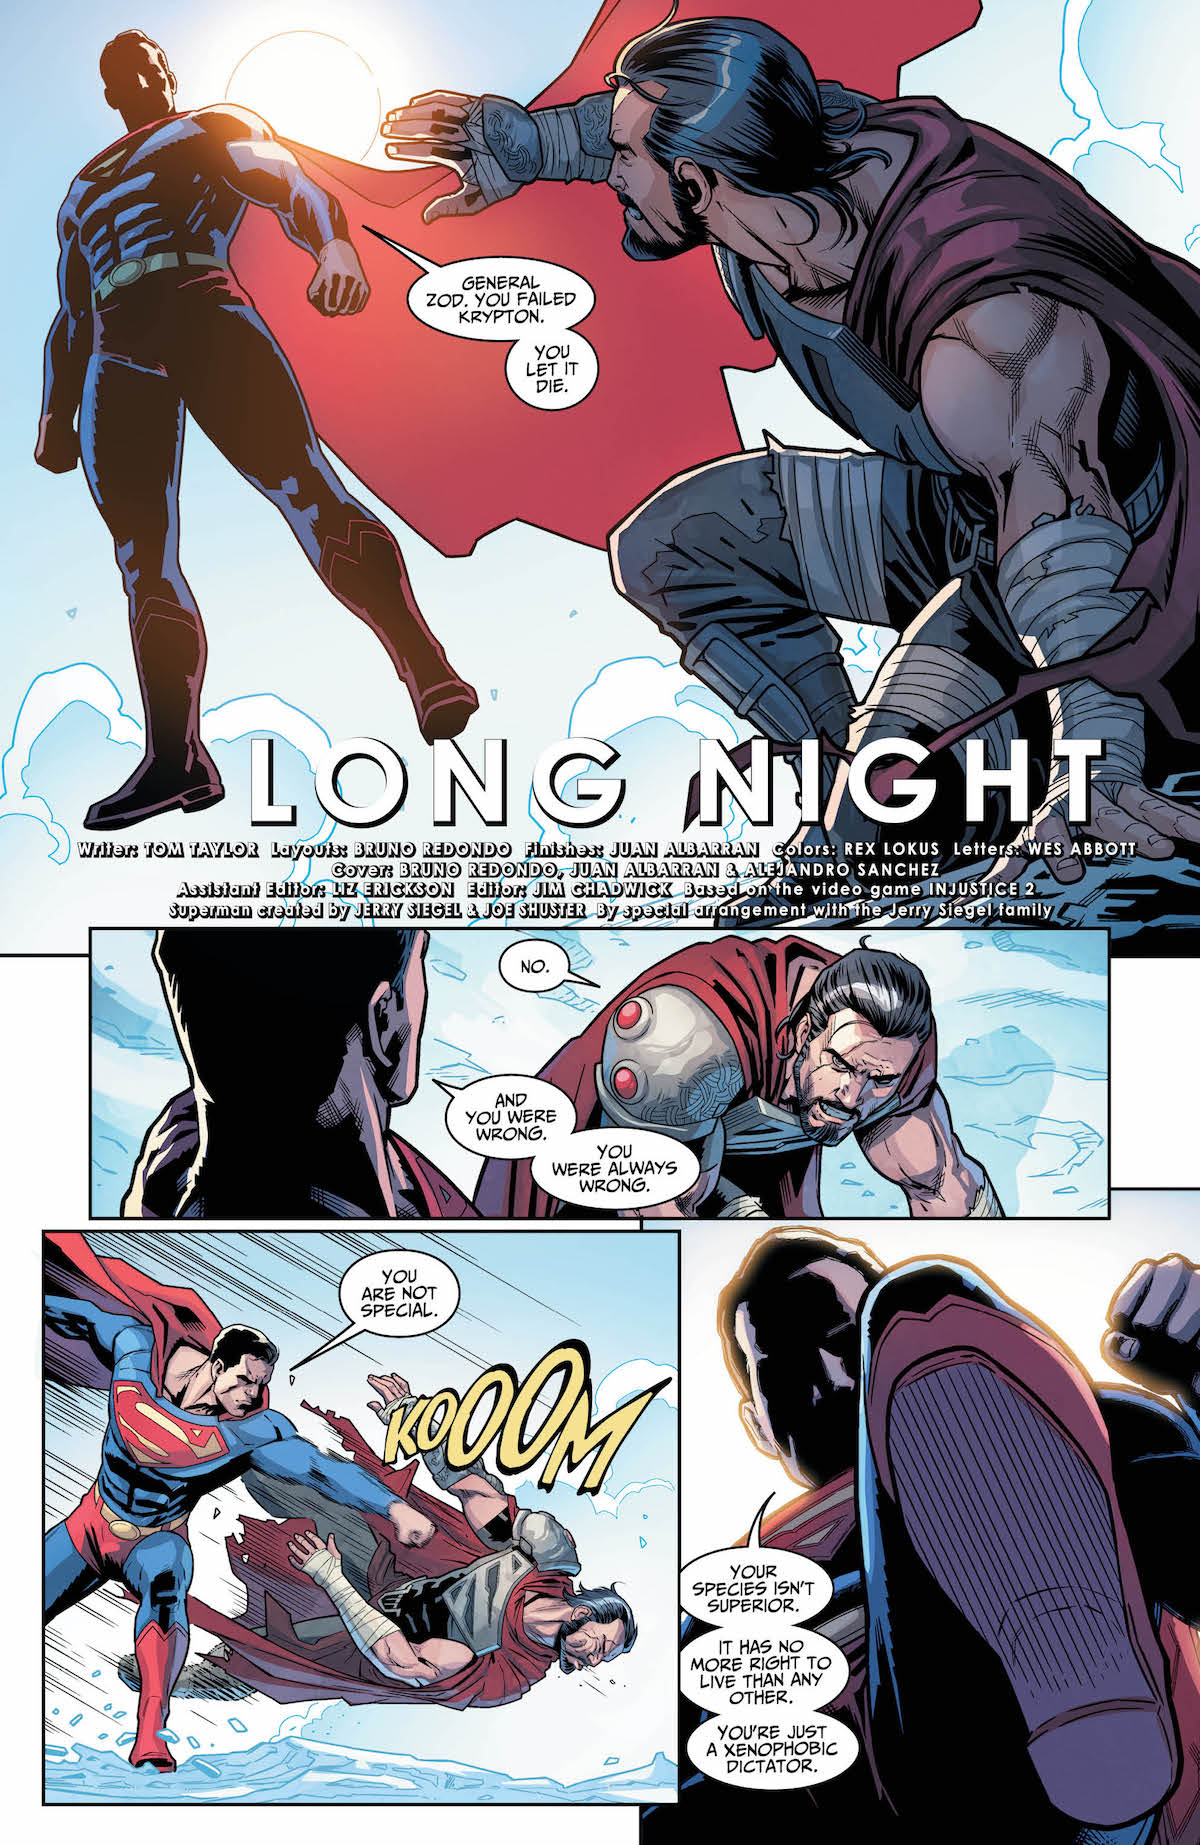 Injustice 2 #20 page 1 Superman and Zod